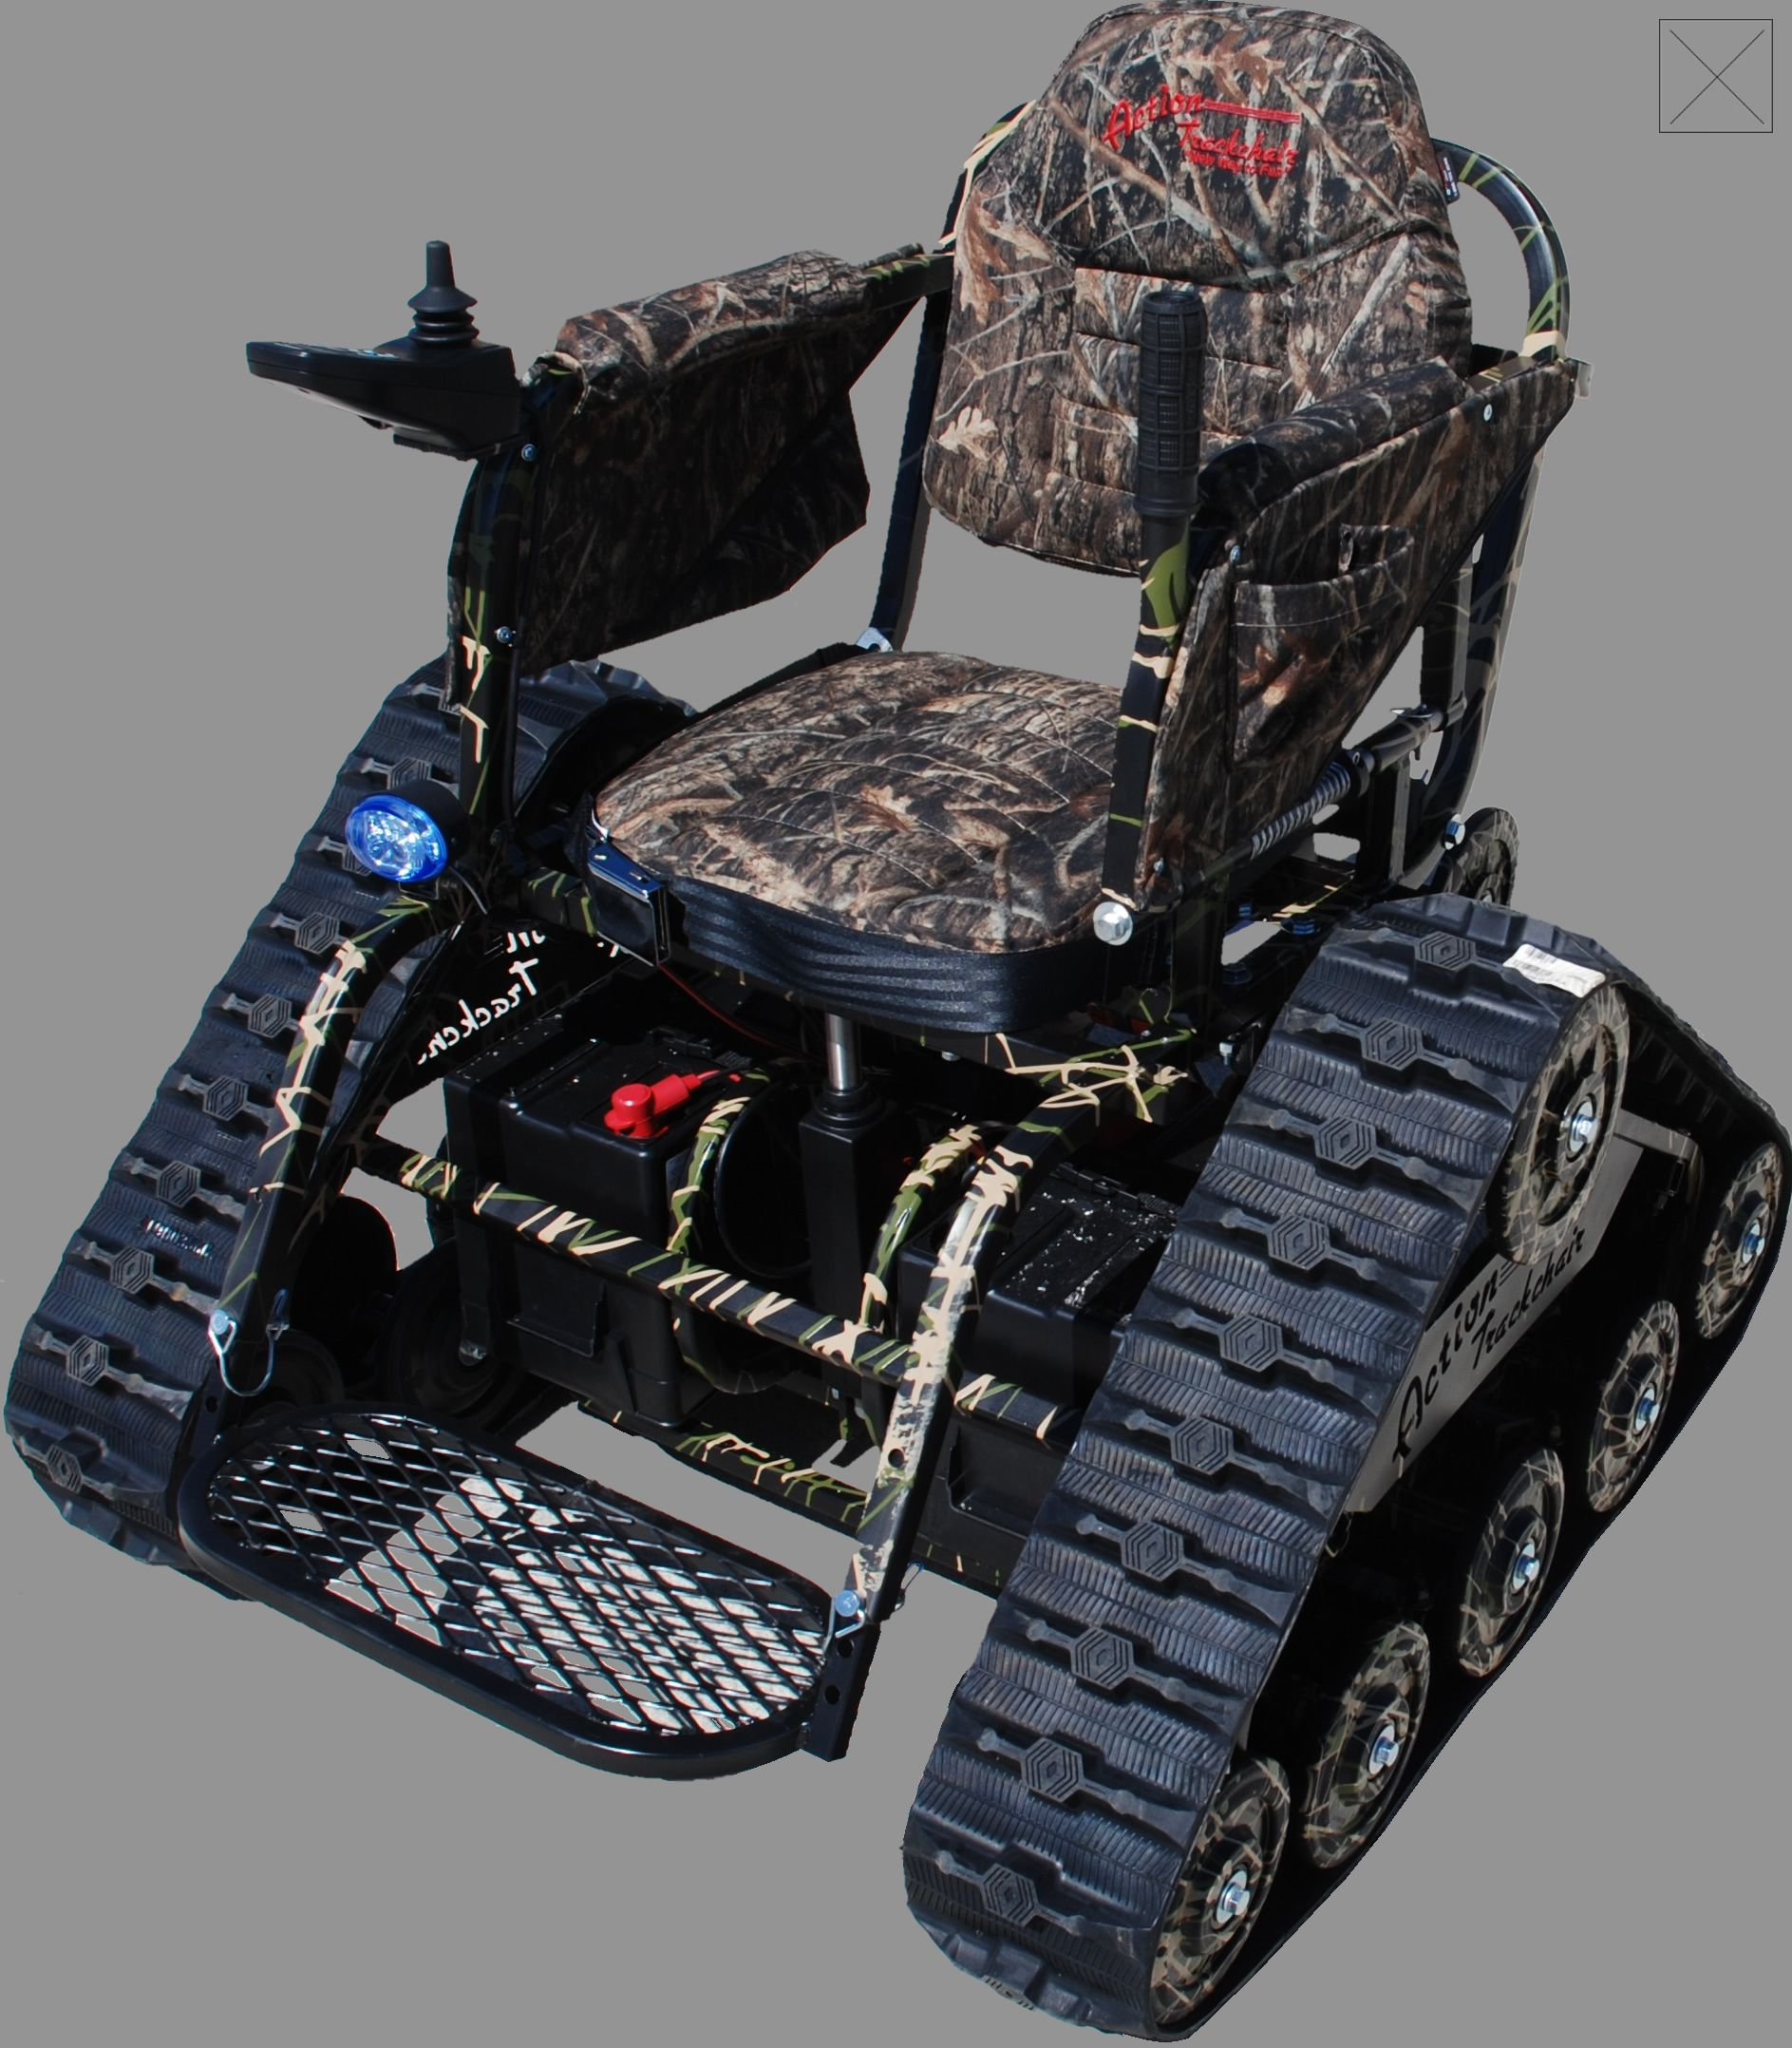 action track chair exercises for legs all terrain vehicle from